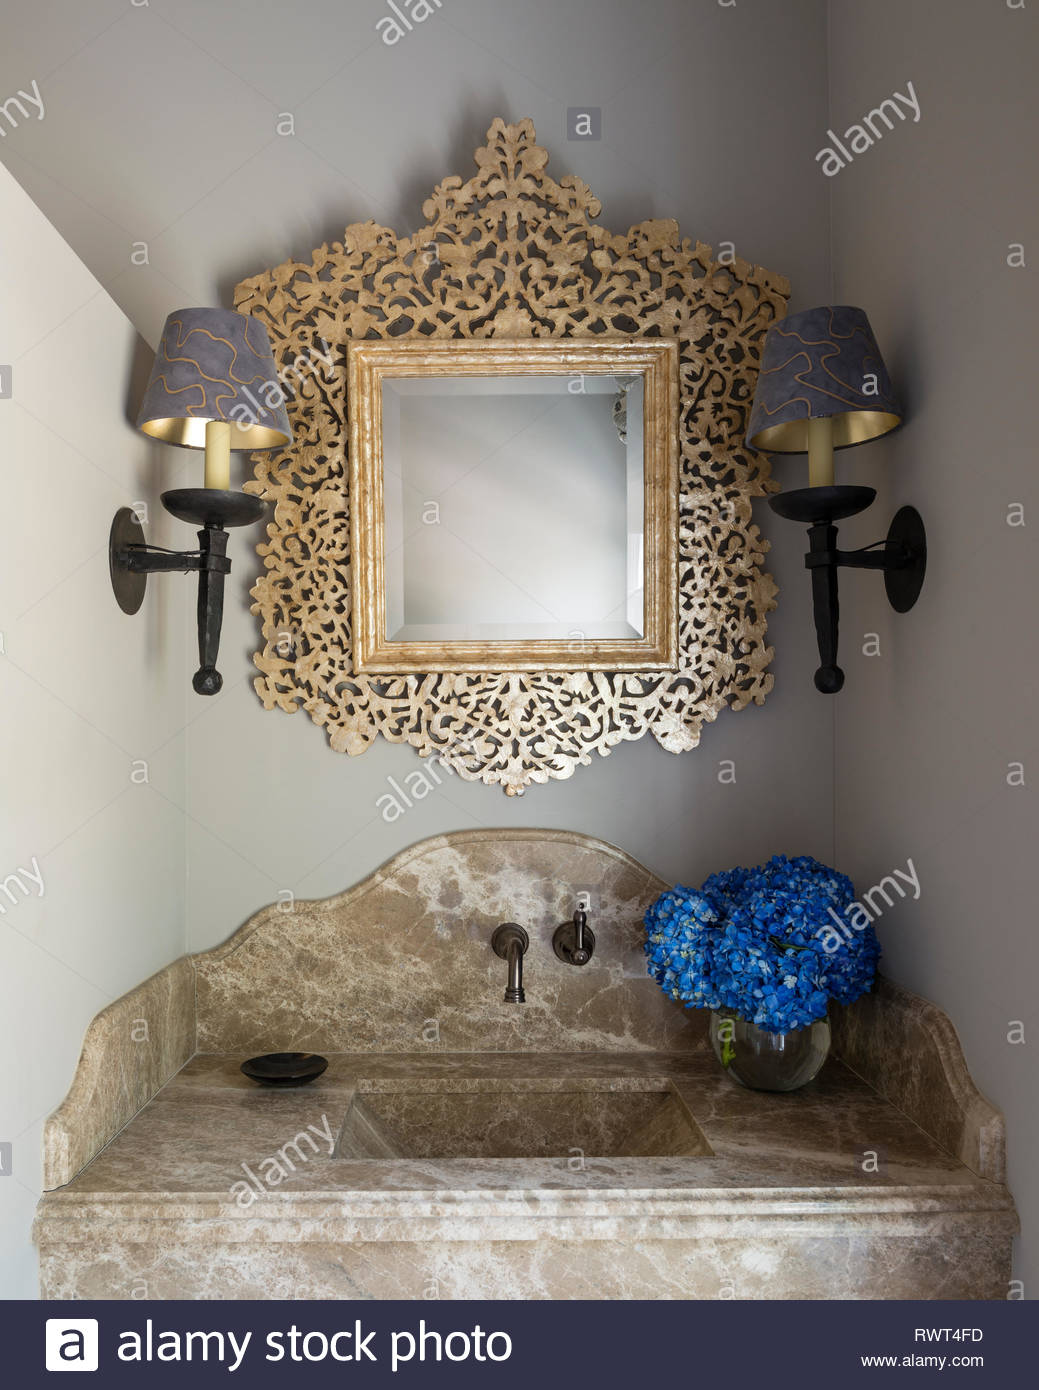 Gold mirror over bathroom sink - Stock Image